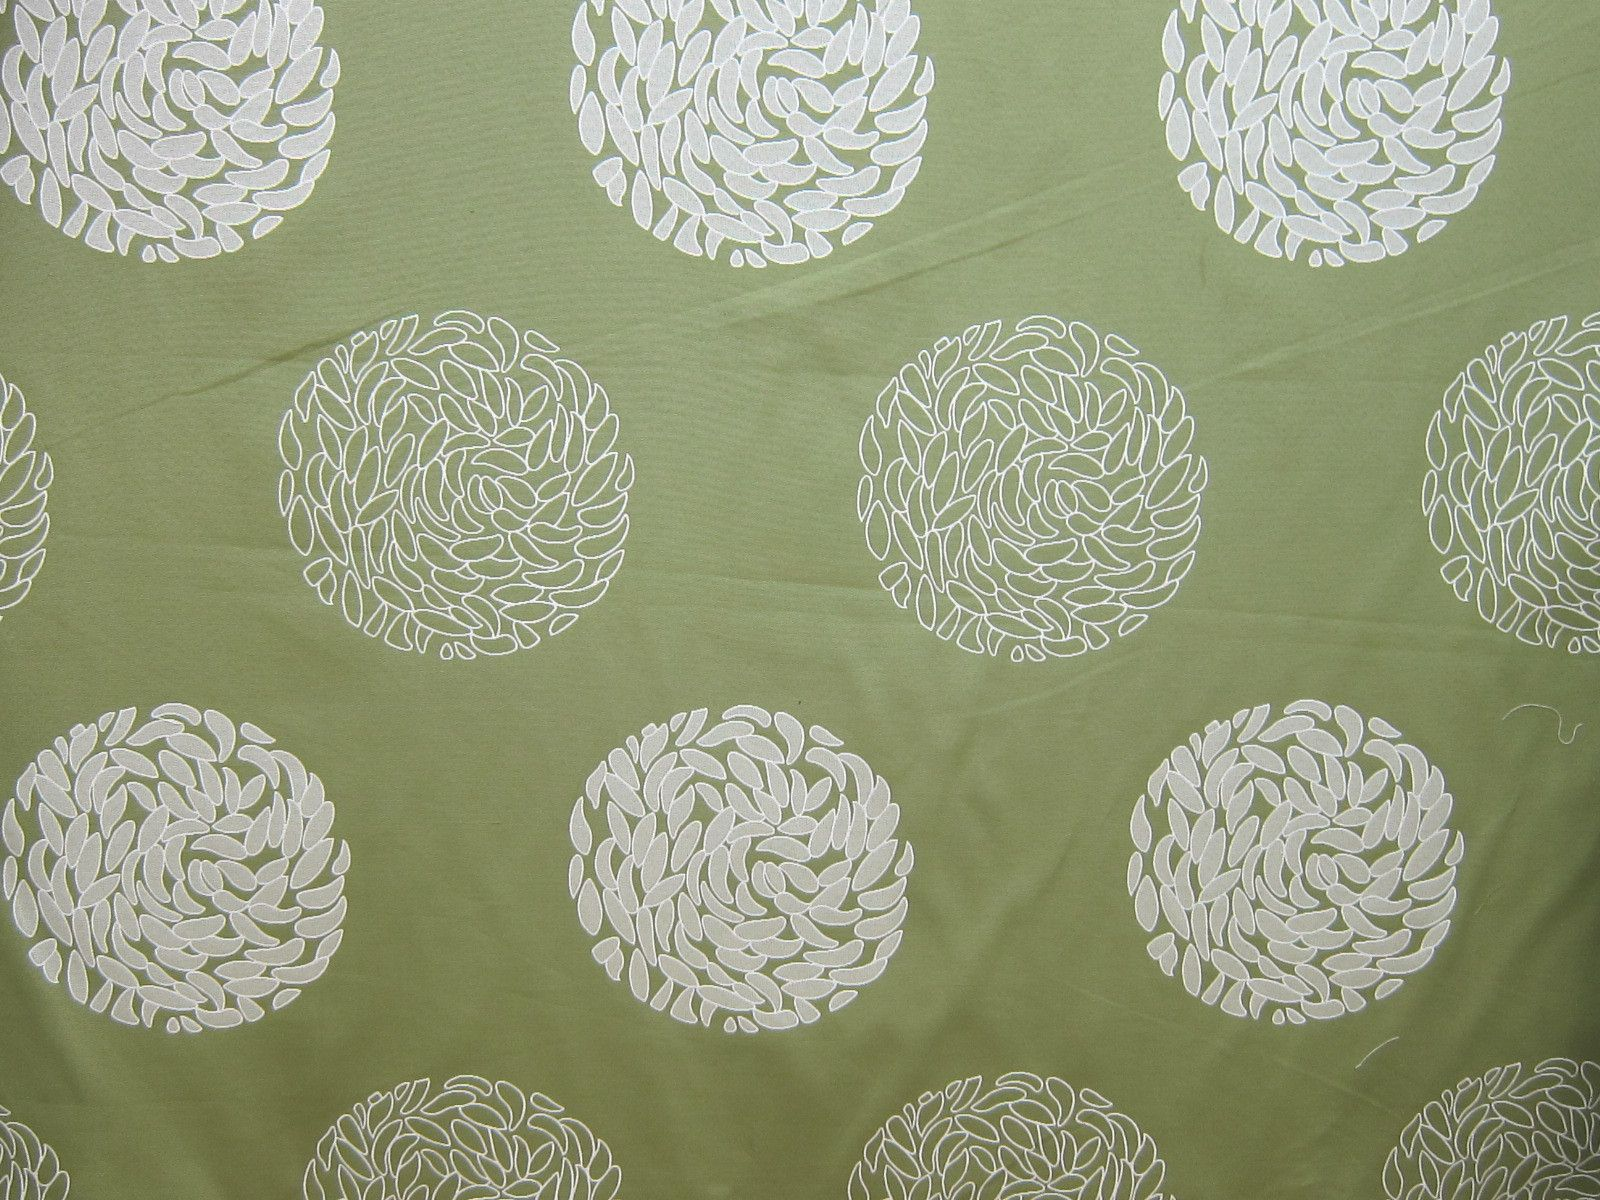 Chacha fabric from Rodeo Home